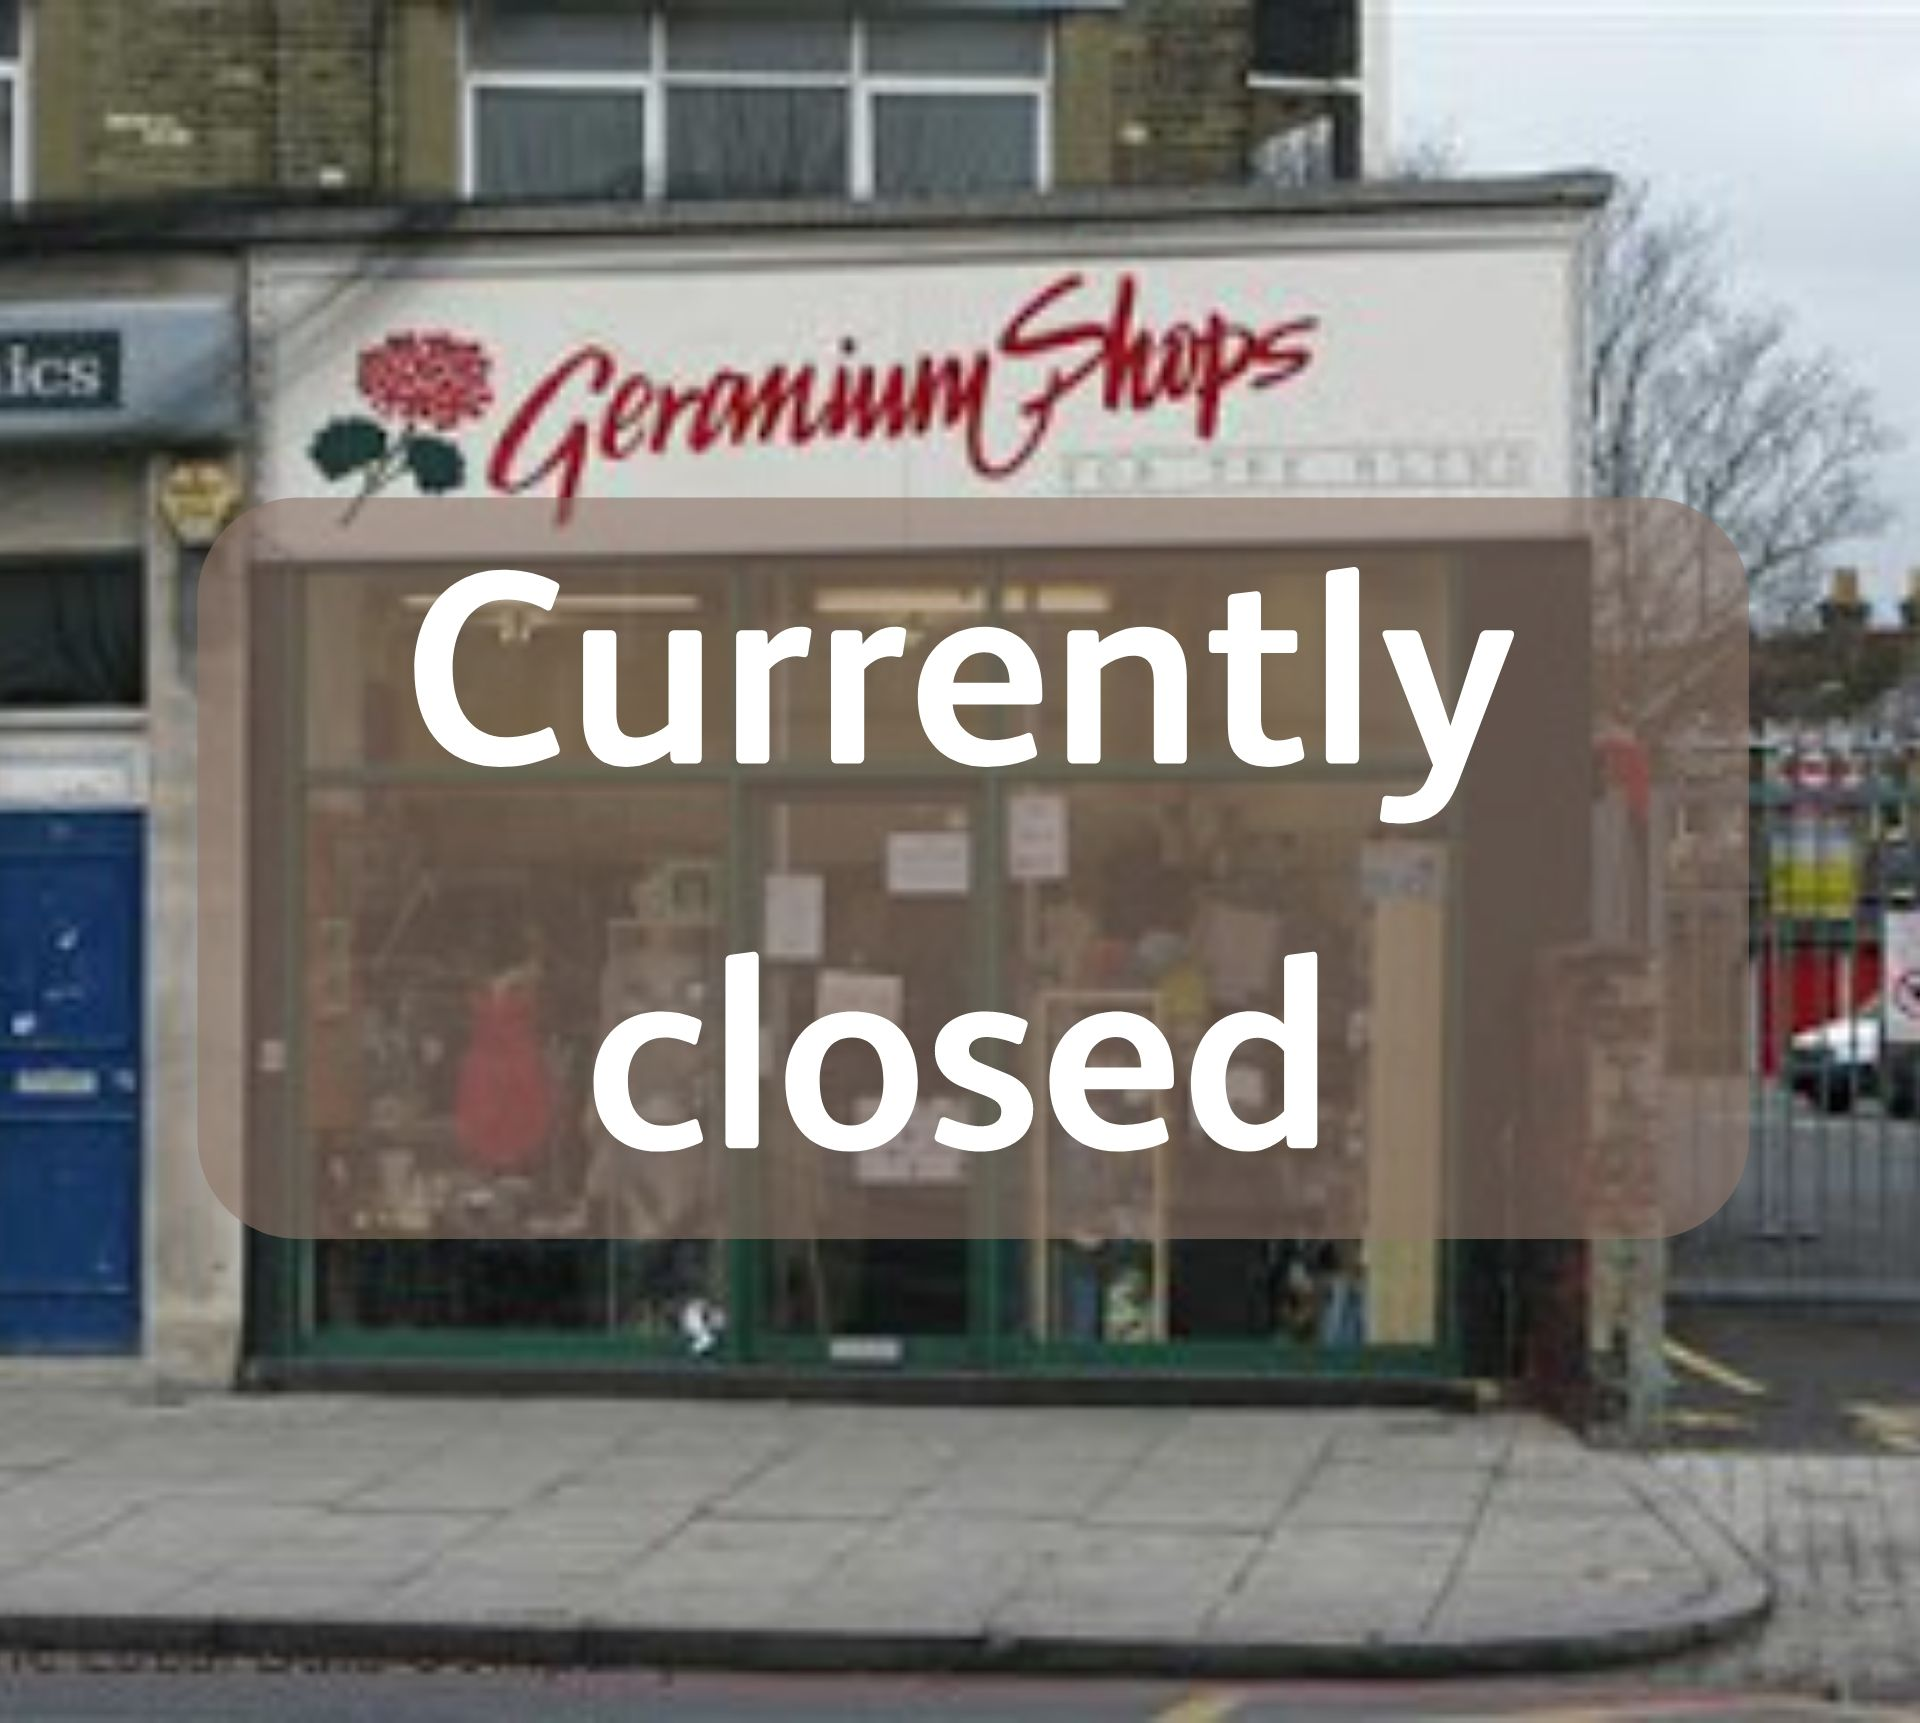 Lee Green shop external view- with caption, Currently Closed